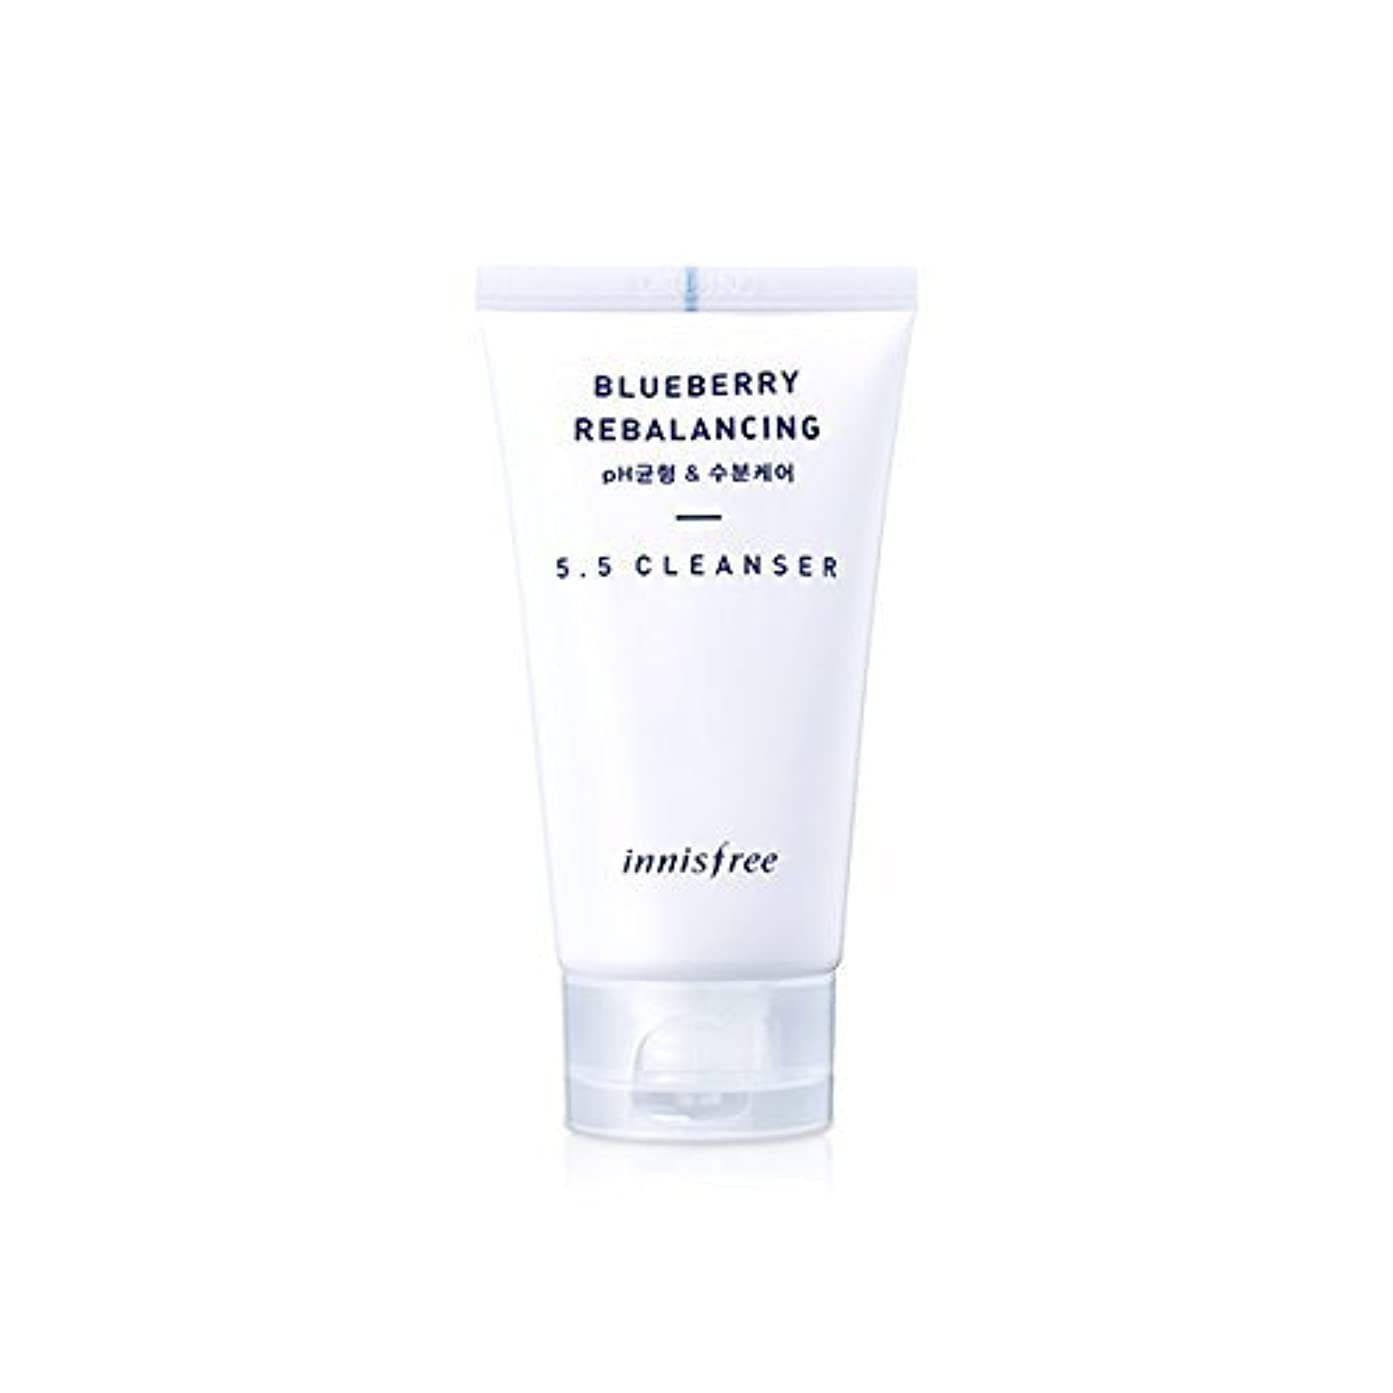 思慮深い発掘する事Innisfree Blueberry Rebalancing 5.5 Cleanser 100ml [並行輸入品]